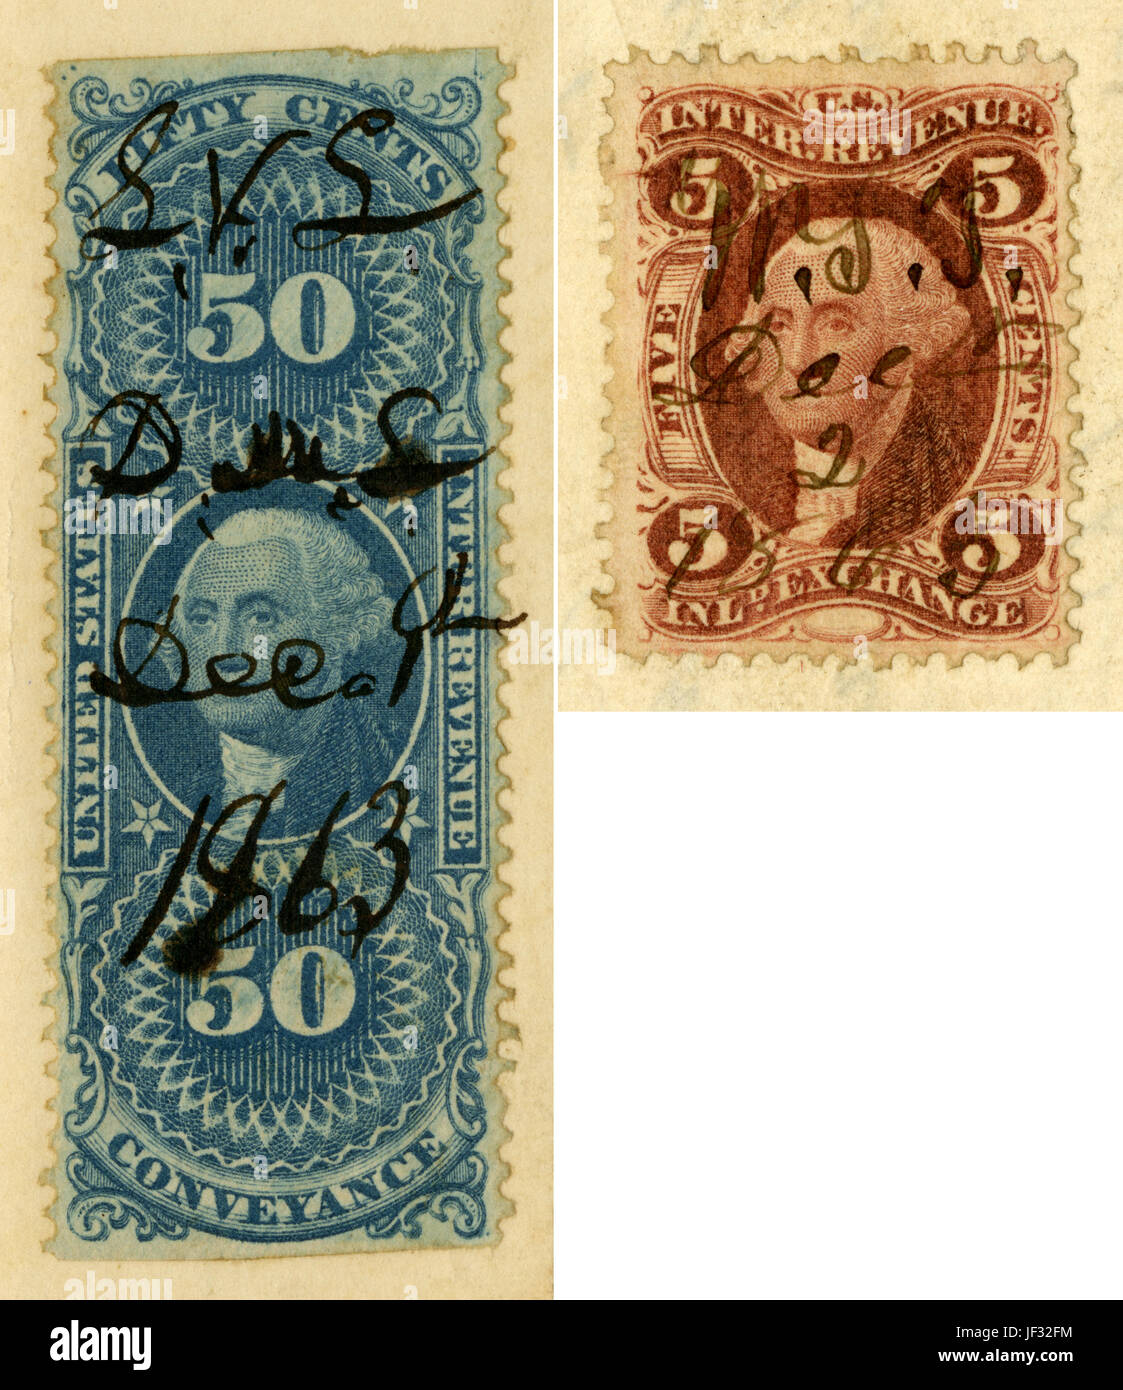 Antique Internal Revenue stamps, canceled in 1863 and 1865. - Stock Image